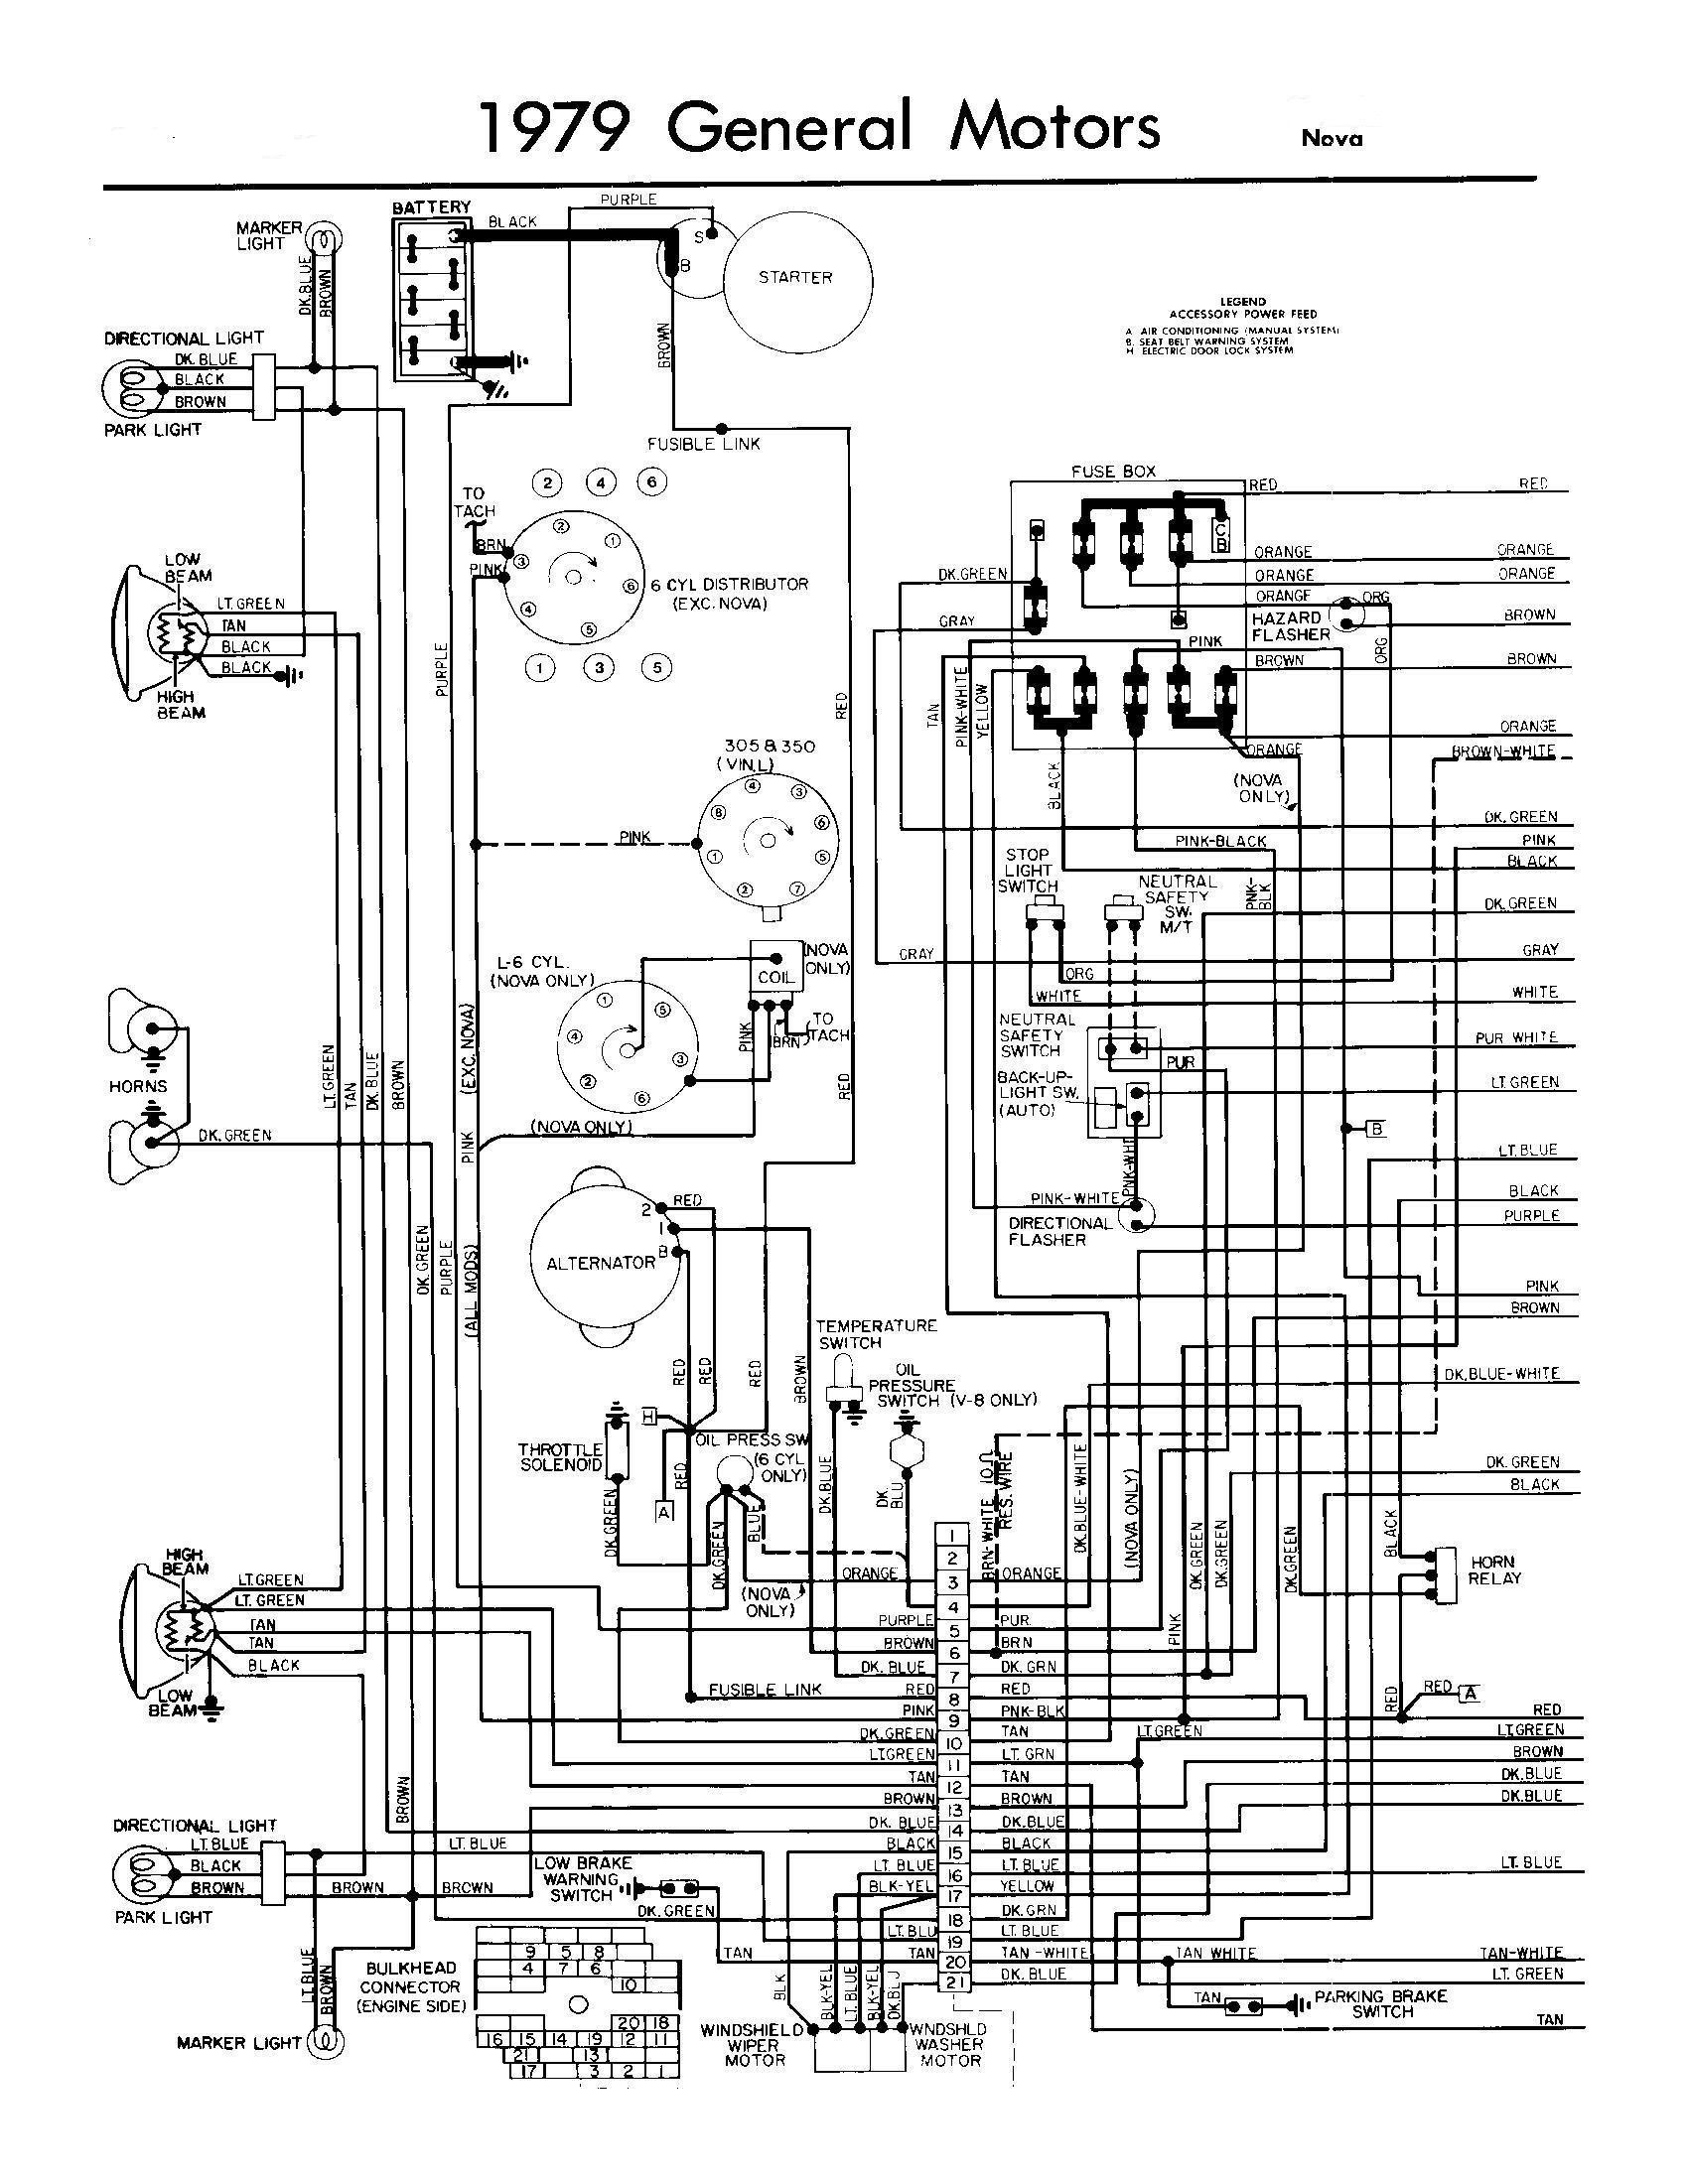 1969 Corvette Alternator Wiring Diagram Wire Center \u2022 69 Mustang Fuse  Block 69 Mustang Alternator Wiring